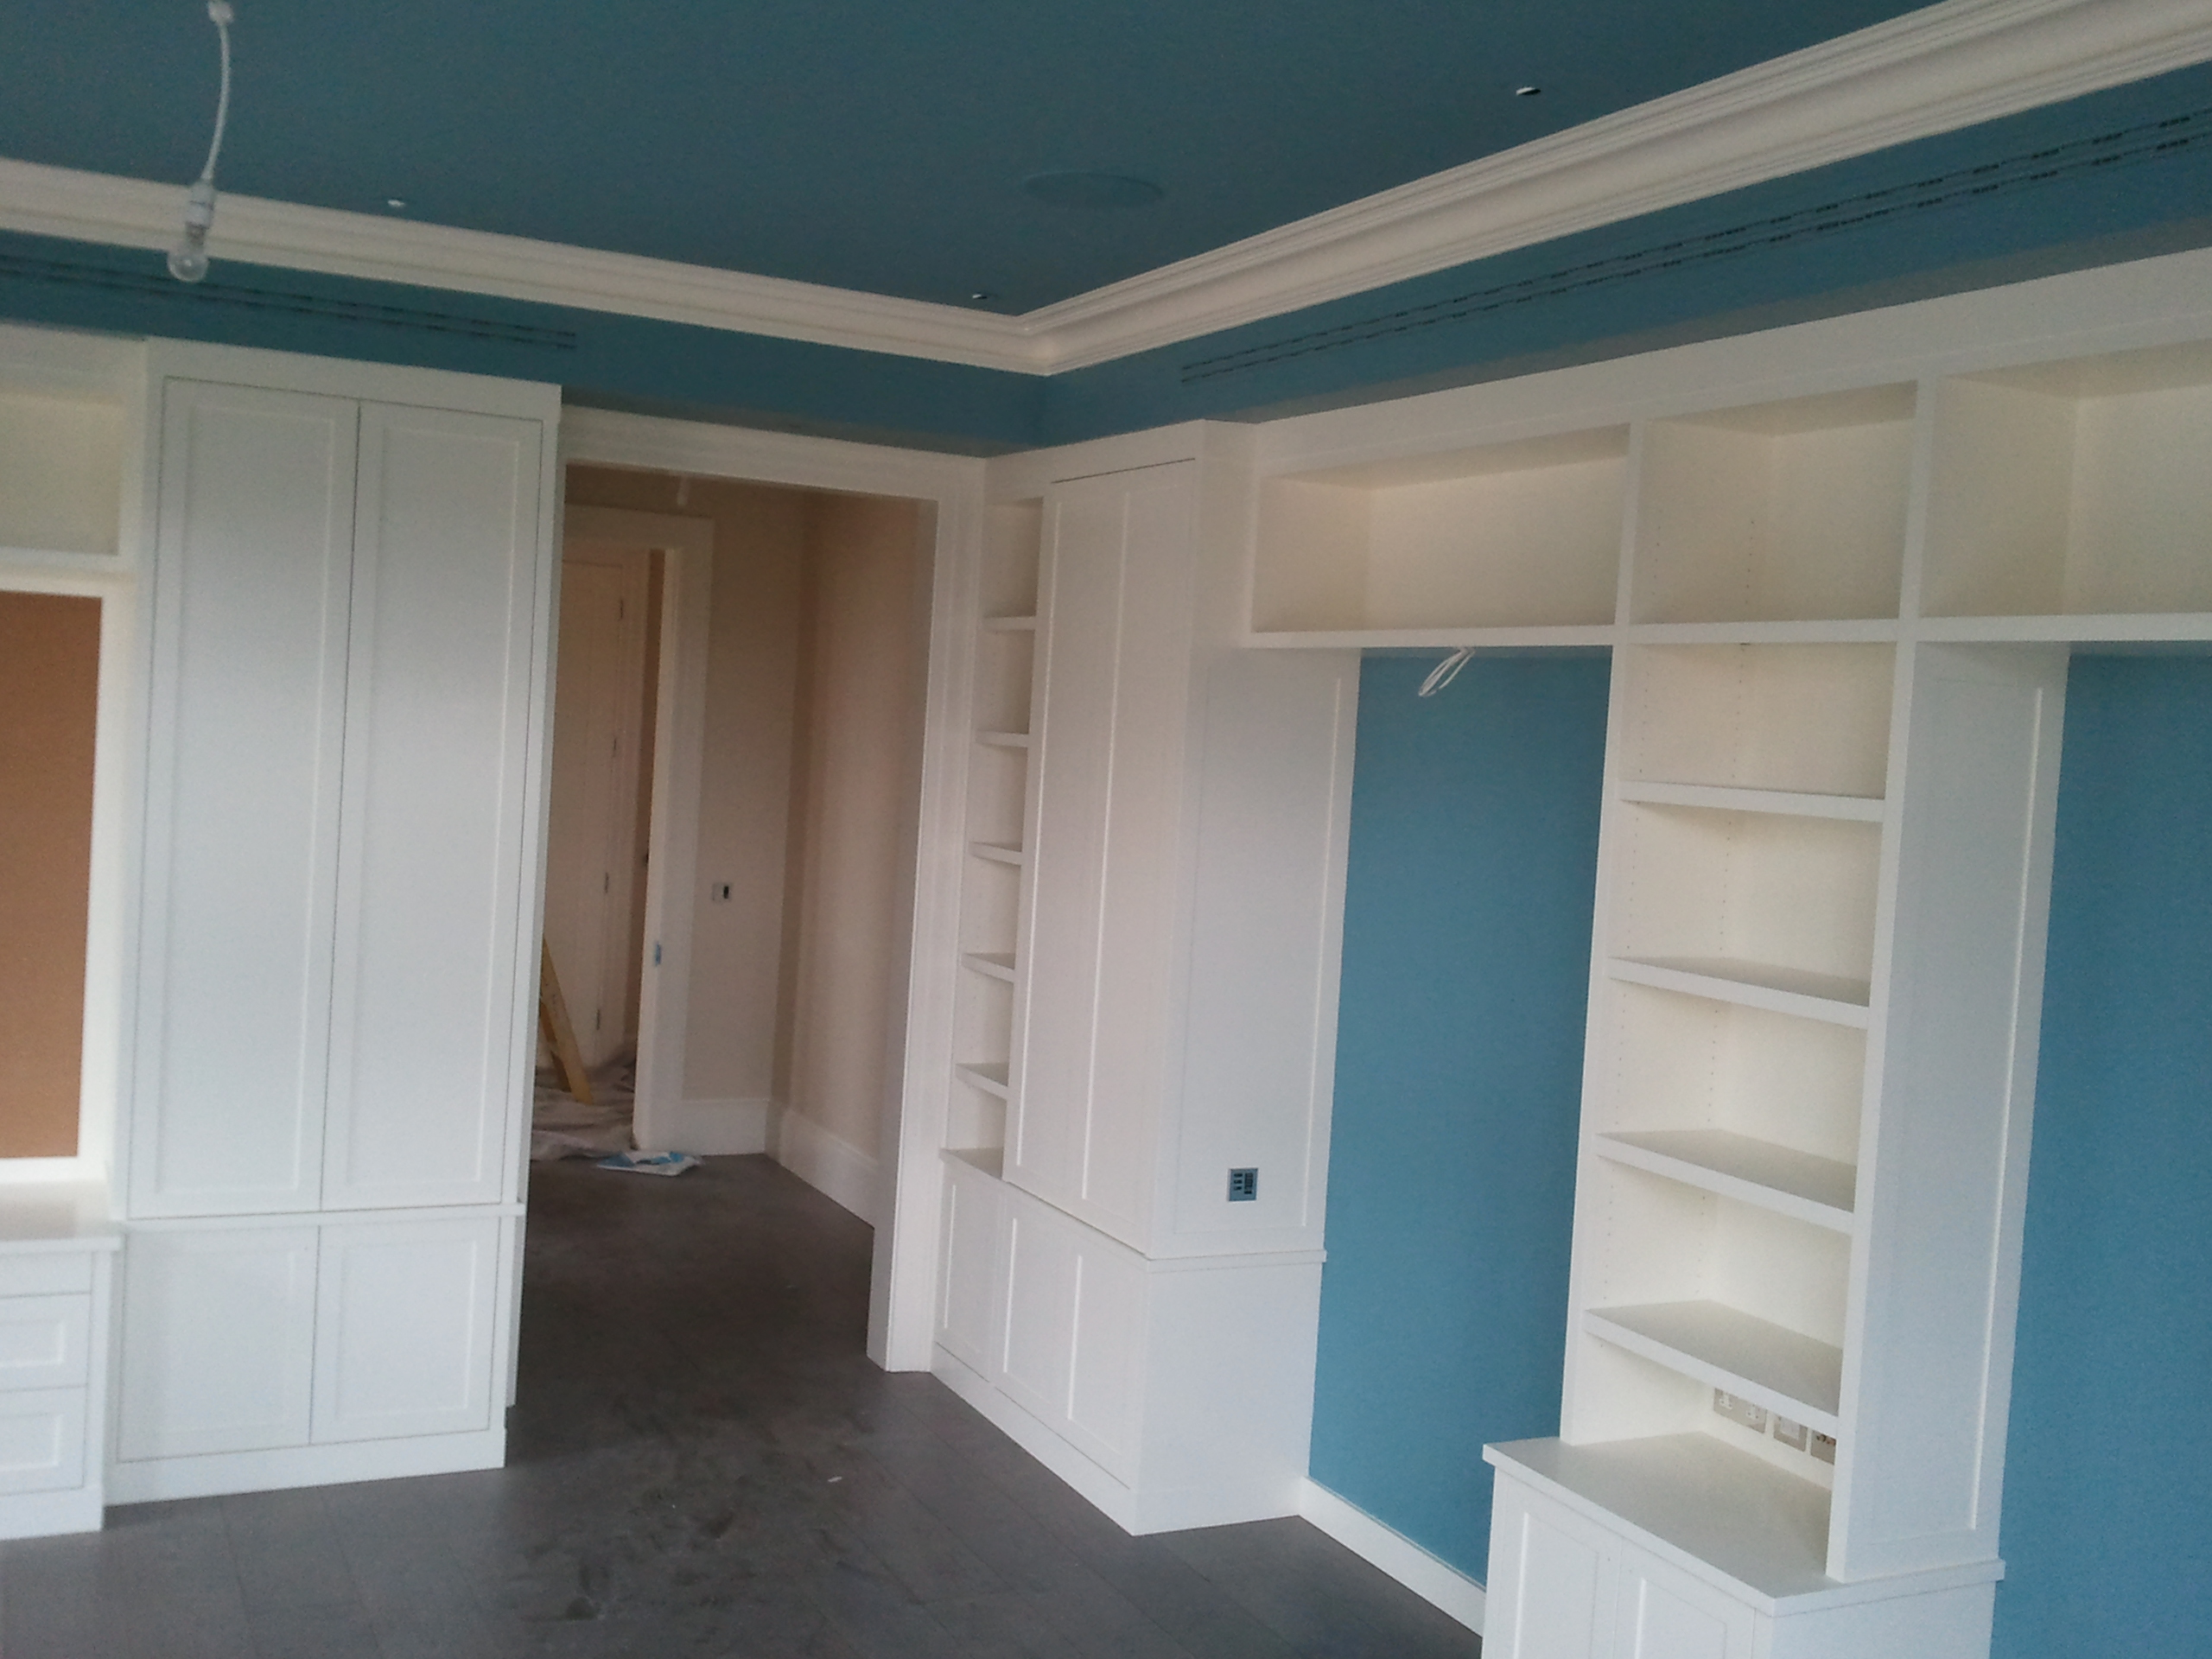 20 Painting and decorating, cental London